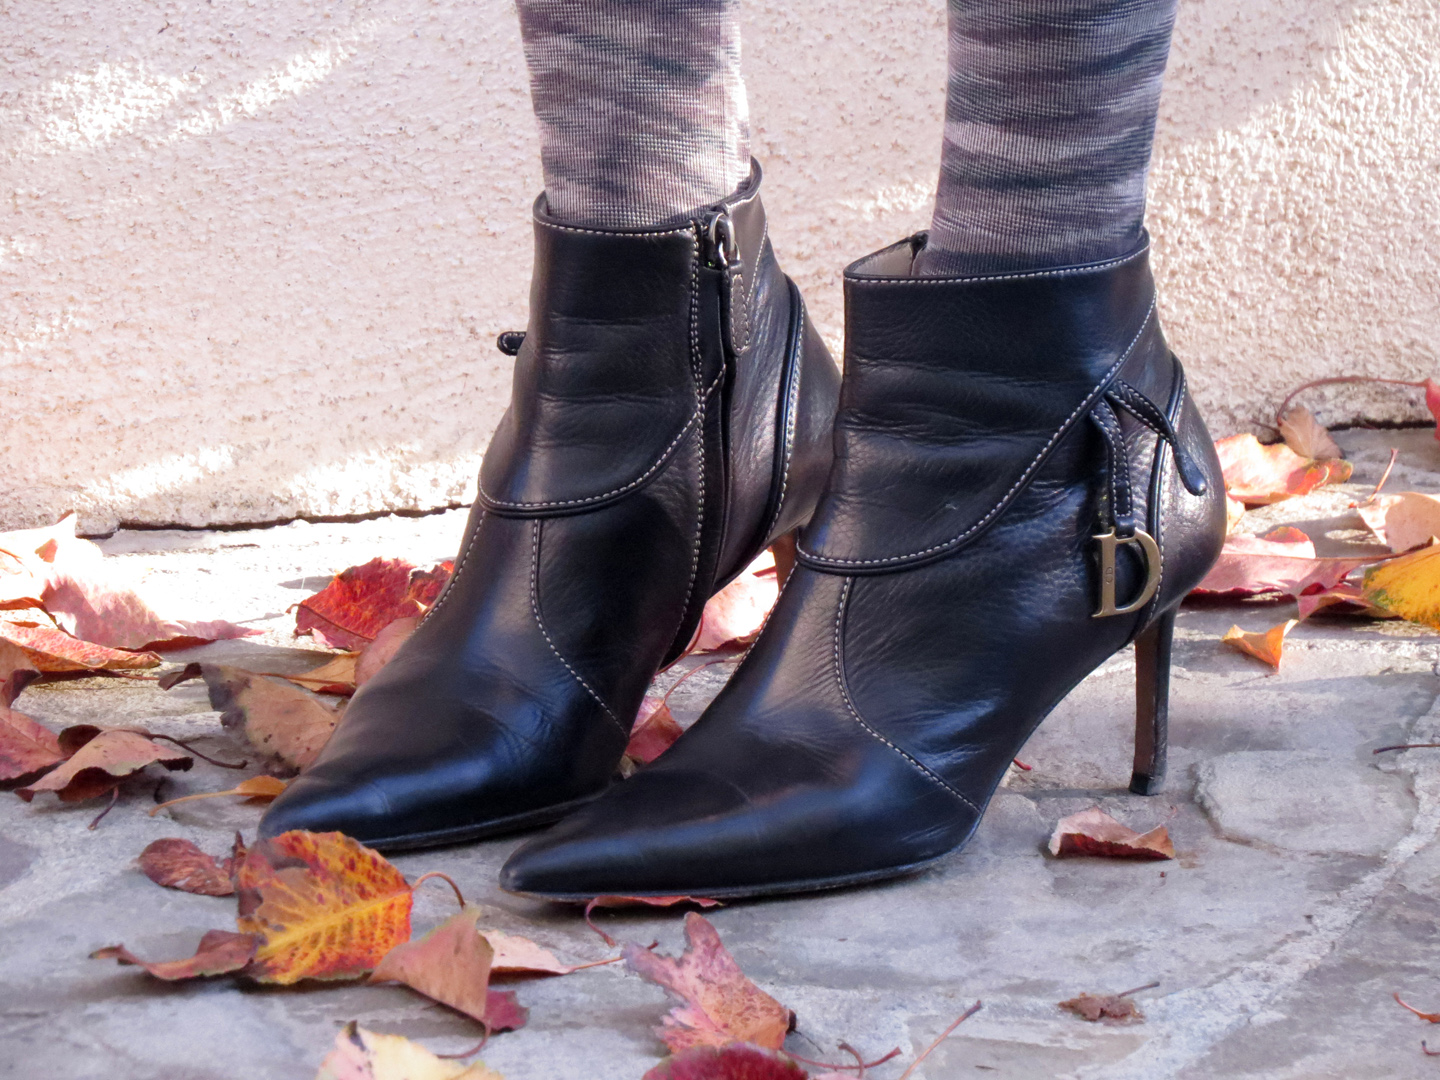 Dior pointed toe booties, currently crushing